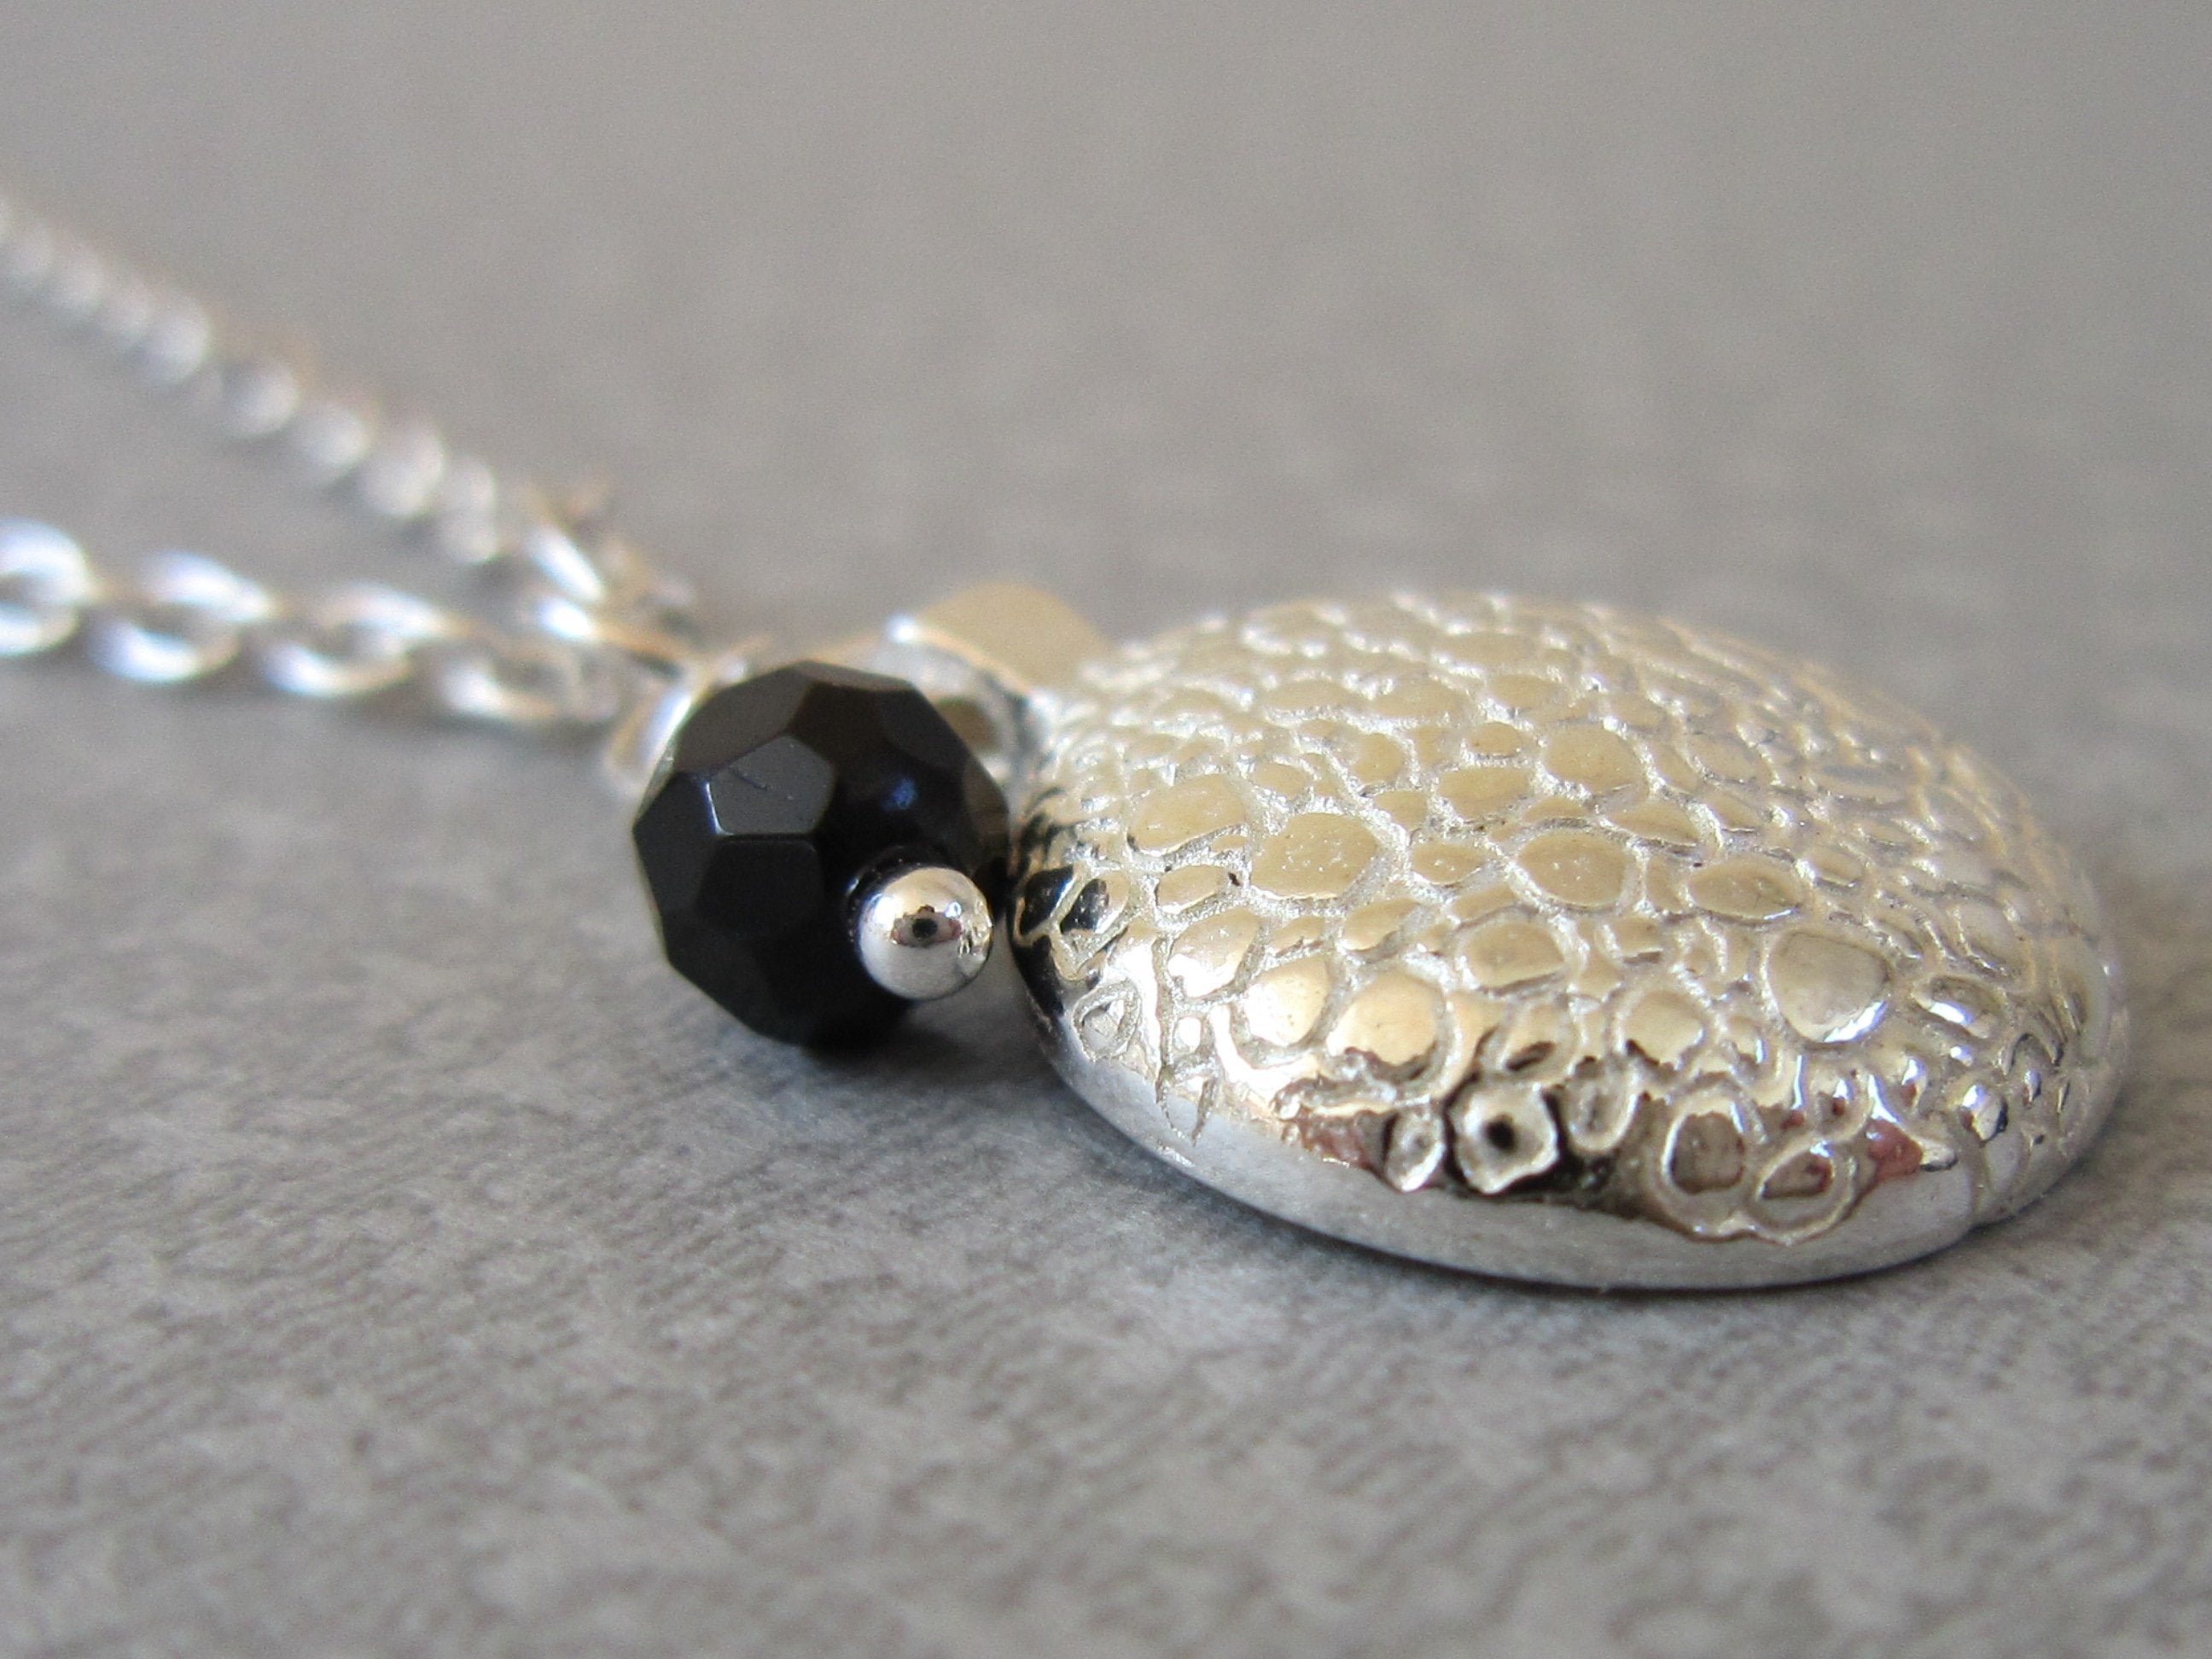 'You' Pendant with Onyx - Amanda Schoppel Art & Wax Carving